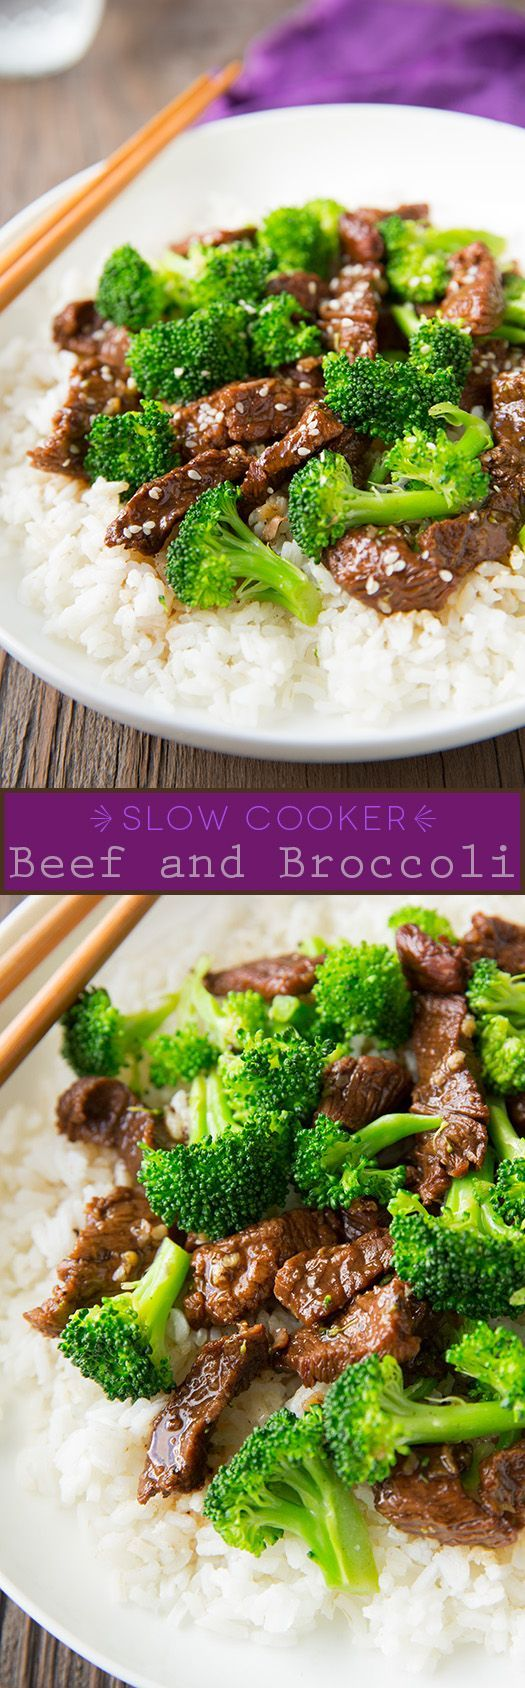 Slow Cooker Beef and Broccoli - this was so good and so easy to make! This recipe is a keeper.